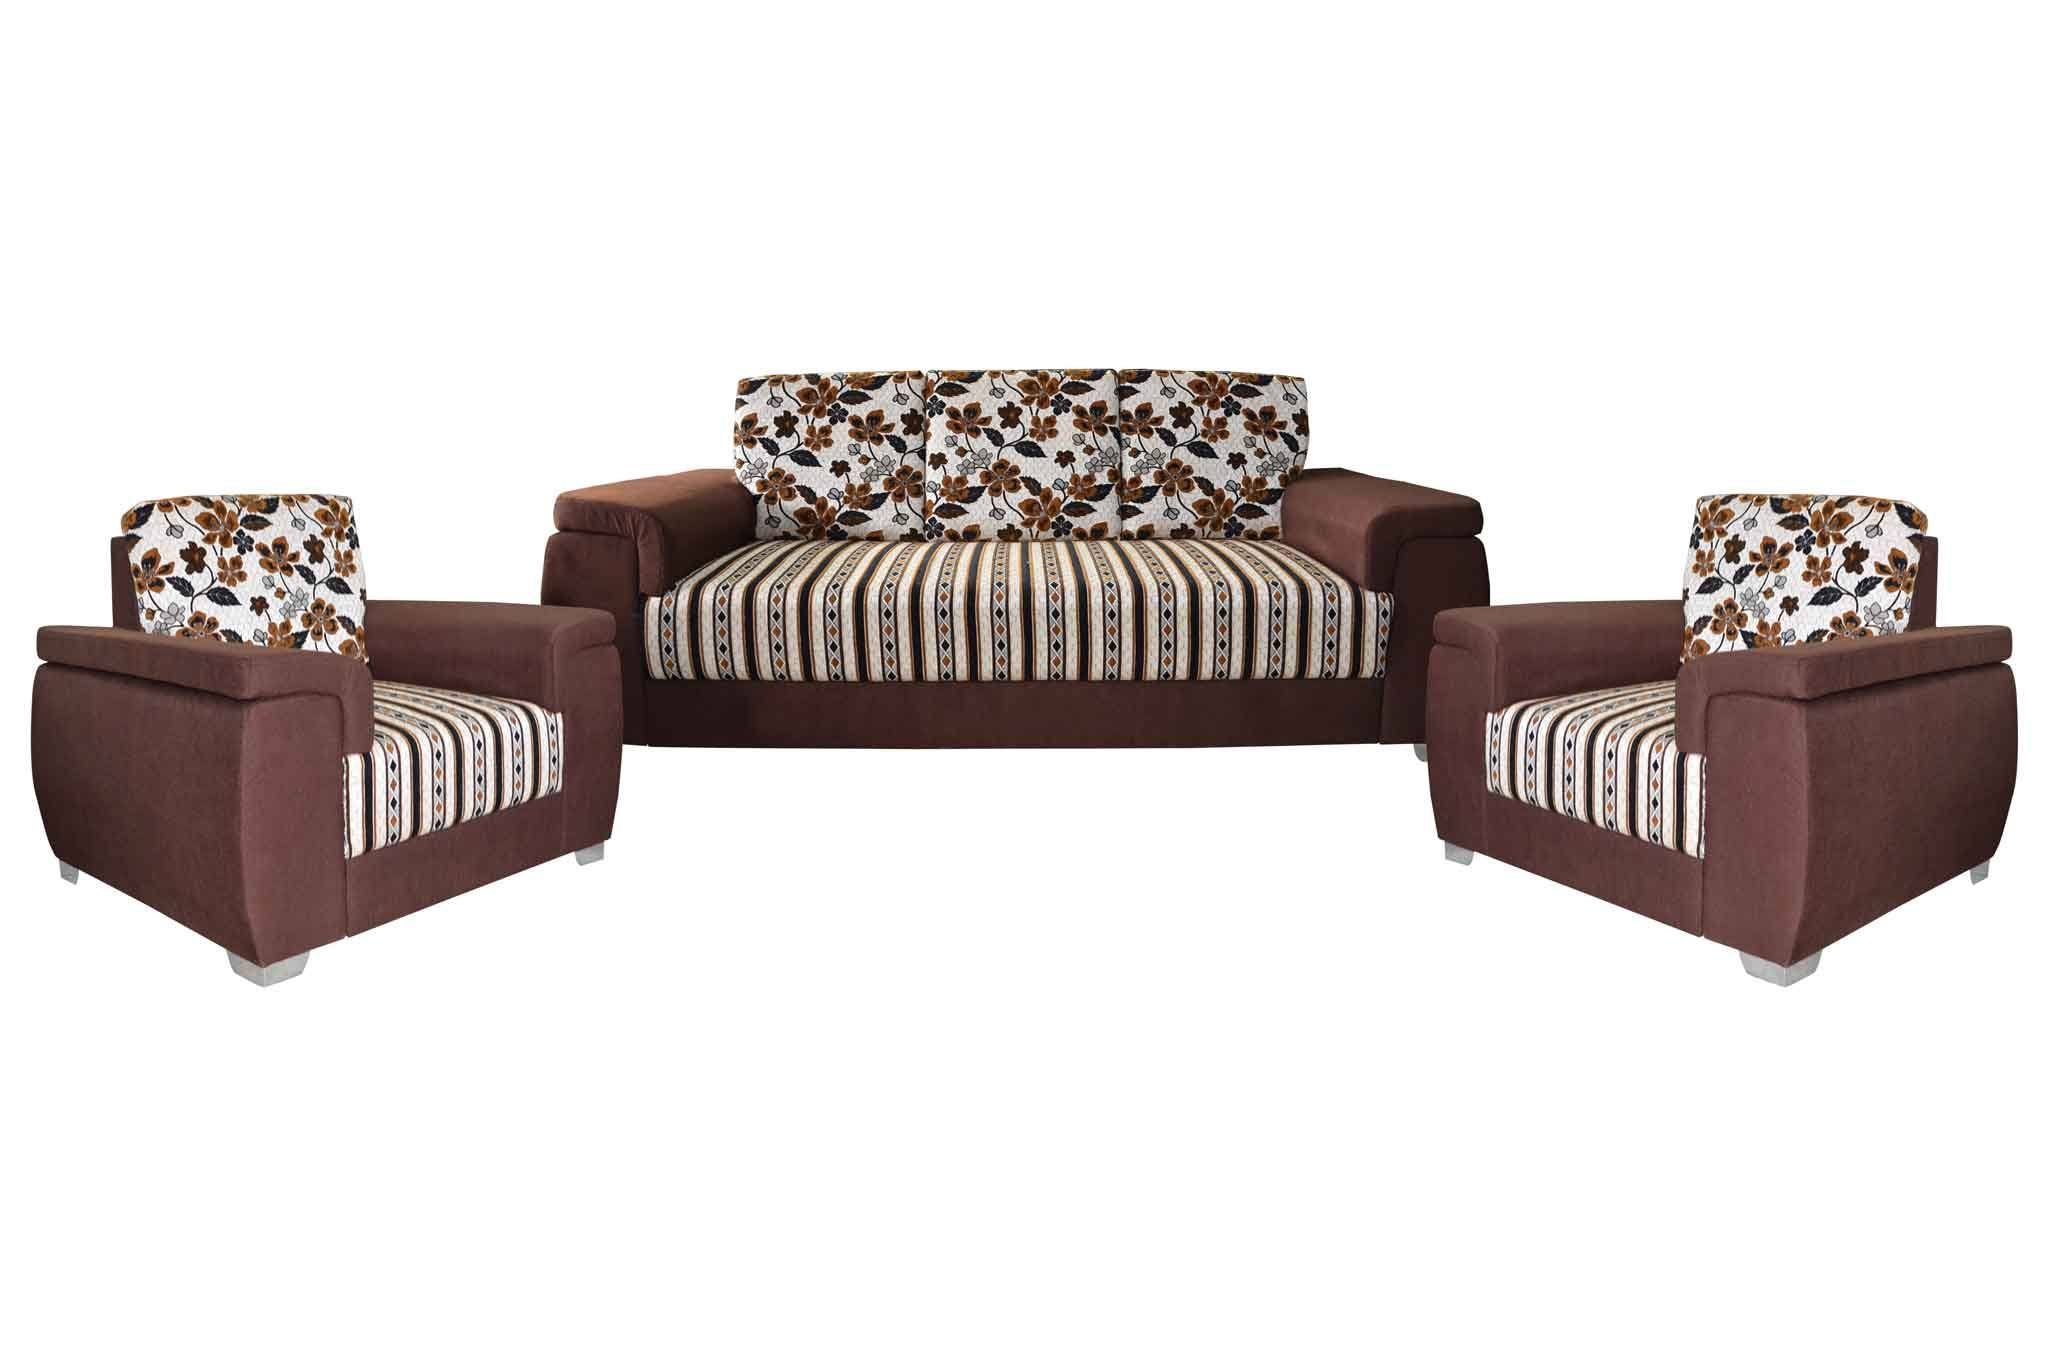 Sofa Set Online Mayro Fabric 3 1 1 Sofa Set Brown